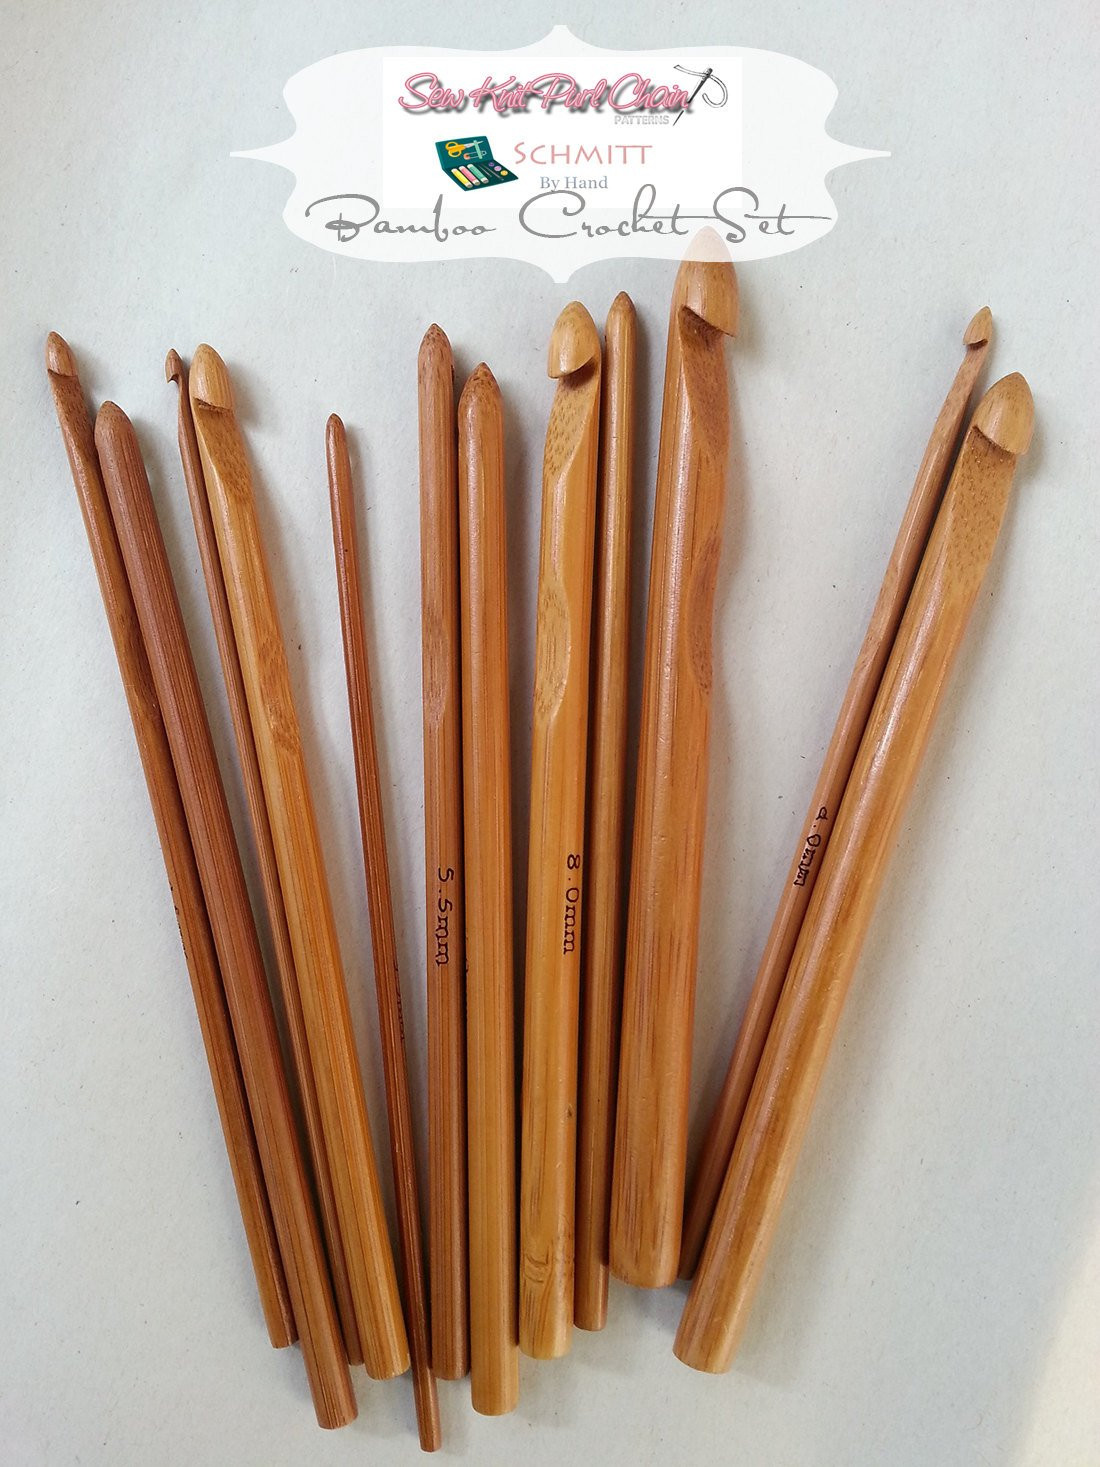 Bamboo Crochet Hooks New From Us Set Of 12 Bamboo Crochet Hooks From by Schmittbyhand Of Marvelous 46 Pics Bamboo Crochet Hooks